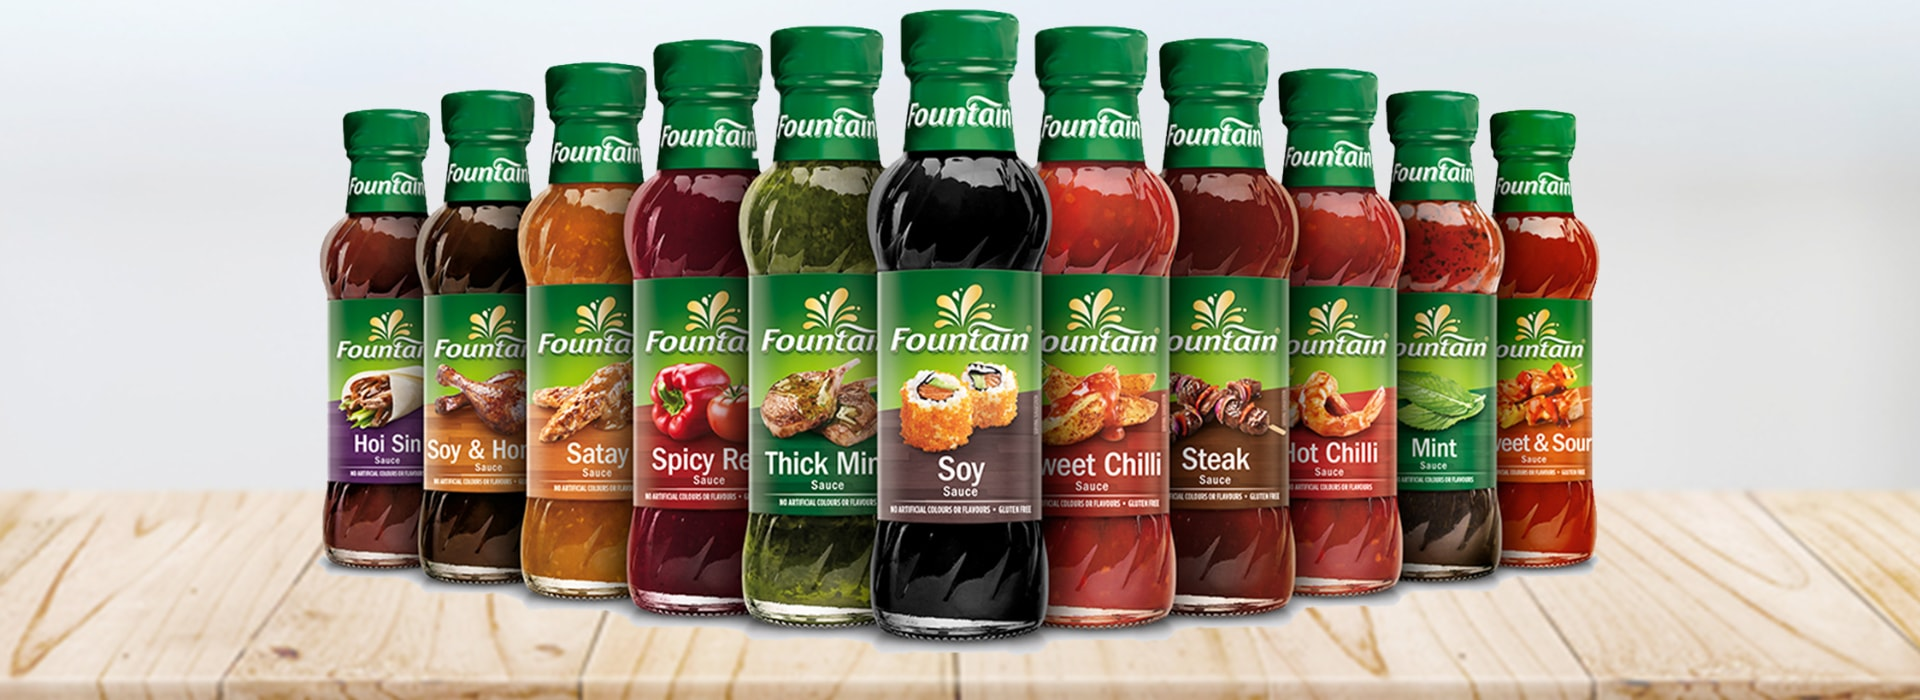 Fountain Sauces Banner